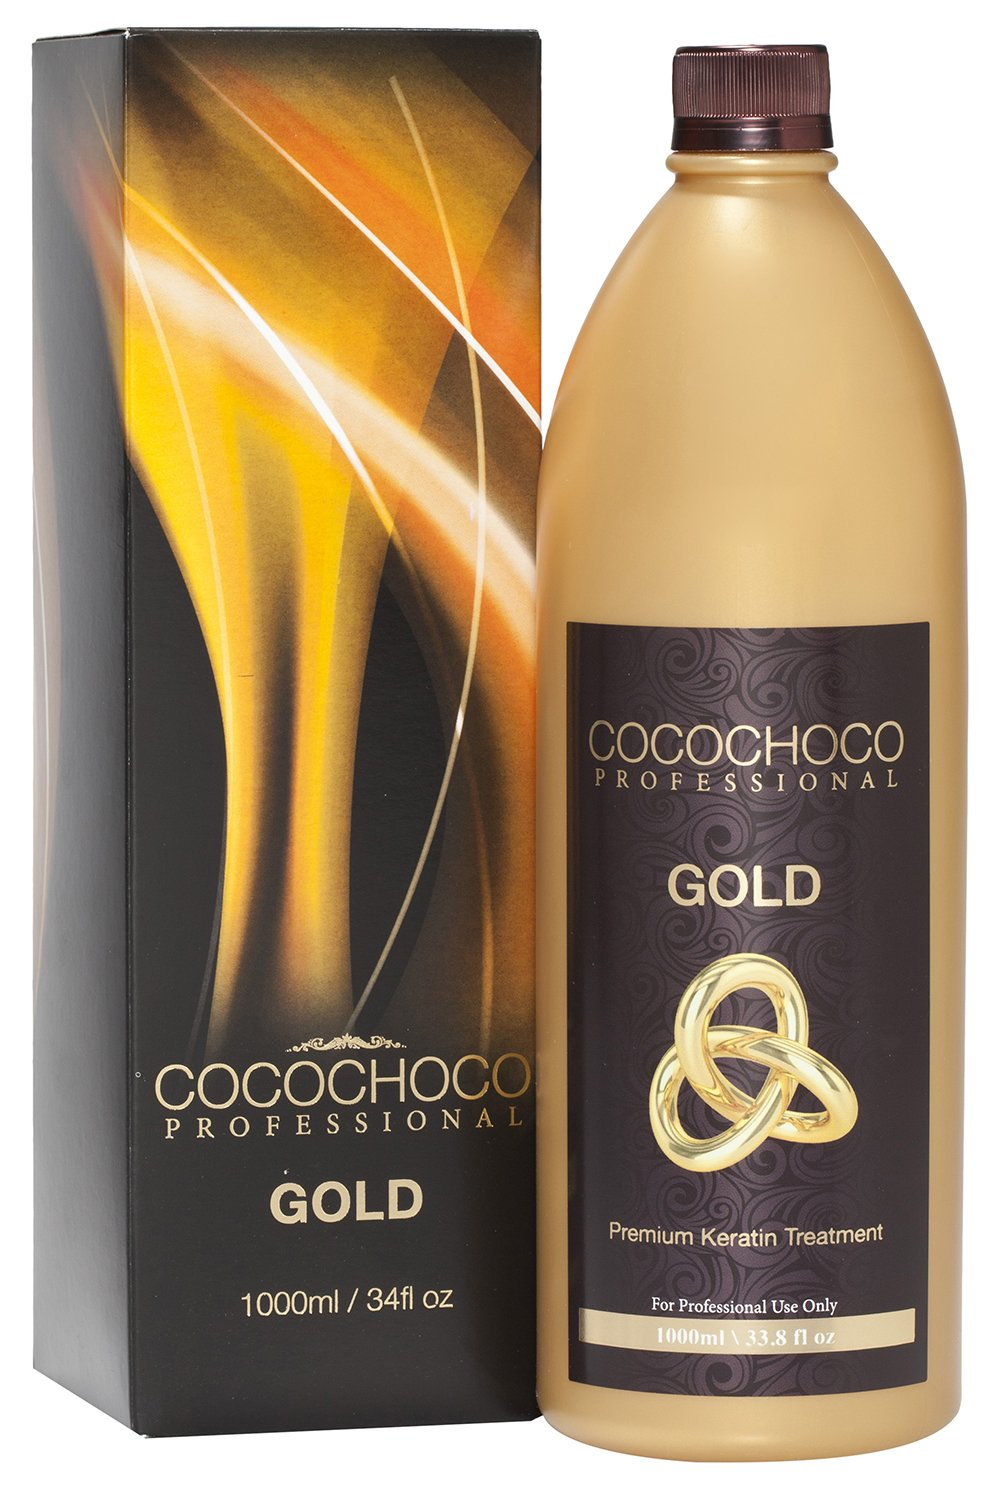 COCOCHOCO Professional Gold Premium Keratin Hair Treatment, 1000 ml 1000 ml G.R Global Cosmetics Ltd CC_GOLD1000